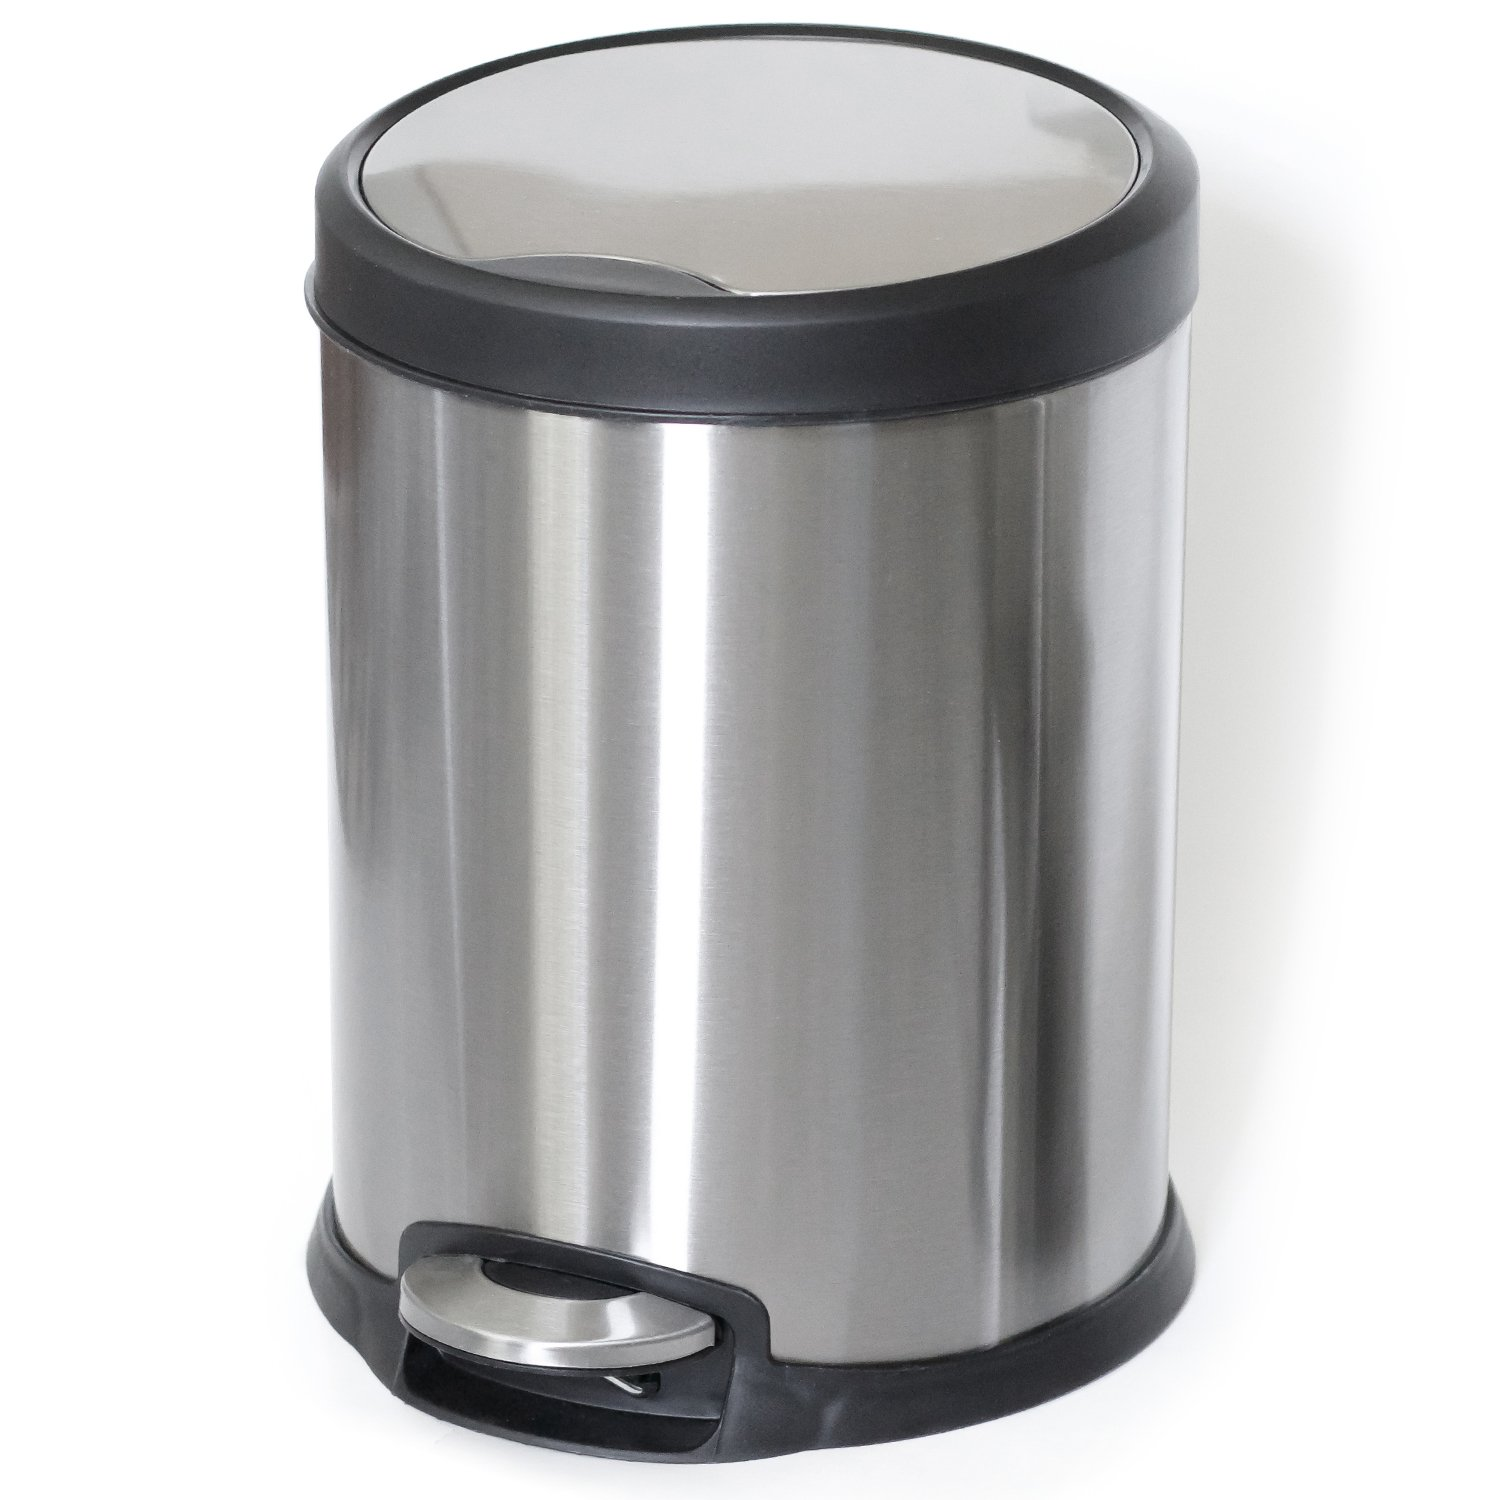 ToiletTree Products Stainless Steel Trash Can, 5 Liter